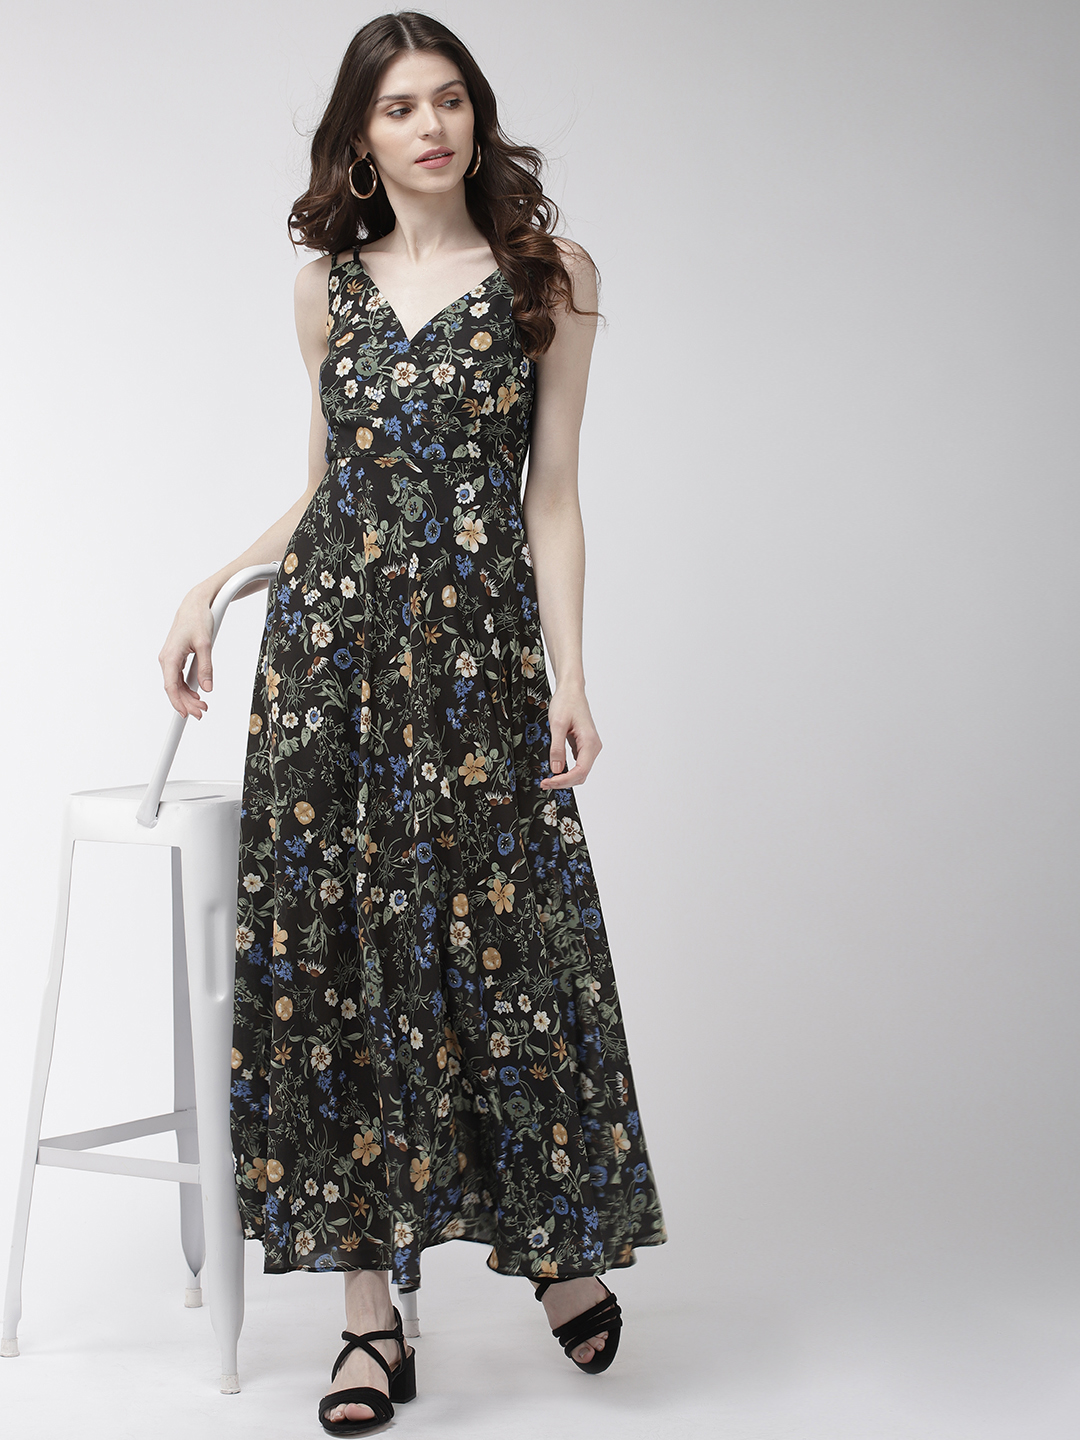 Dresses-Gardens Of Bloom Maxi Dress1